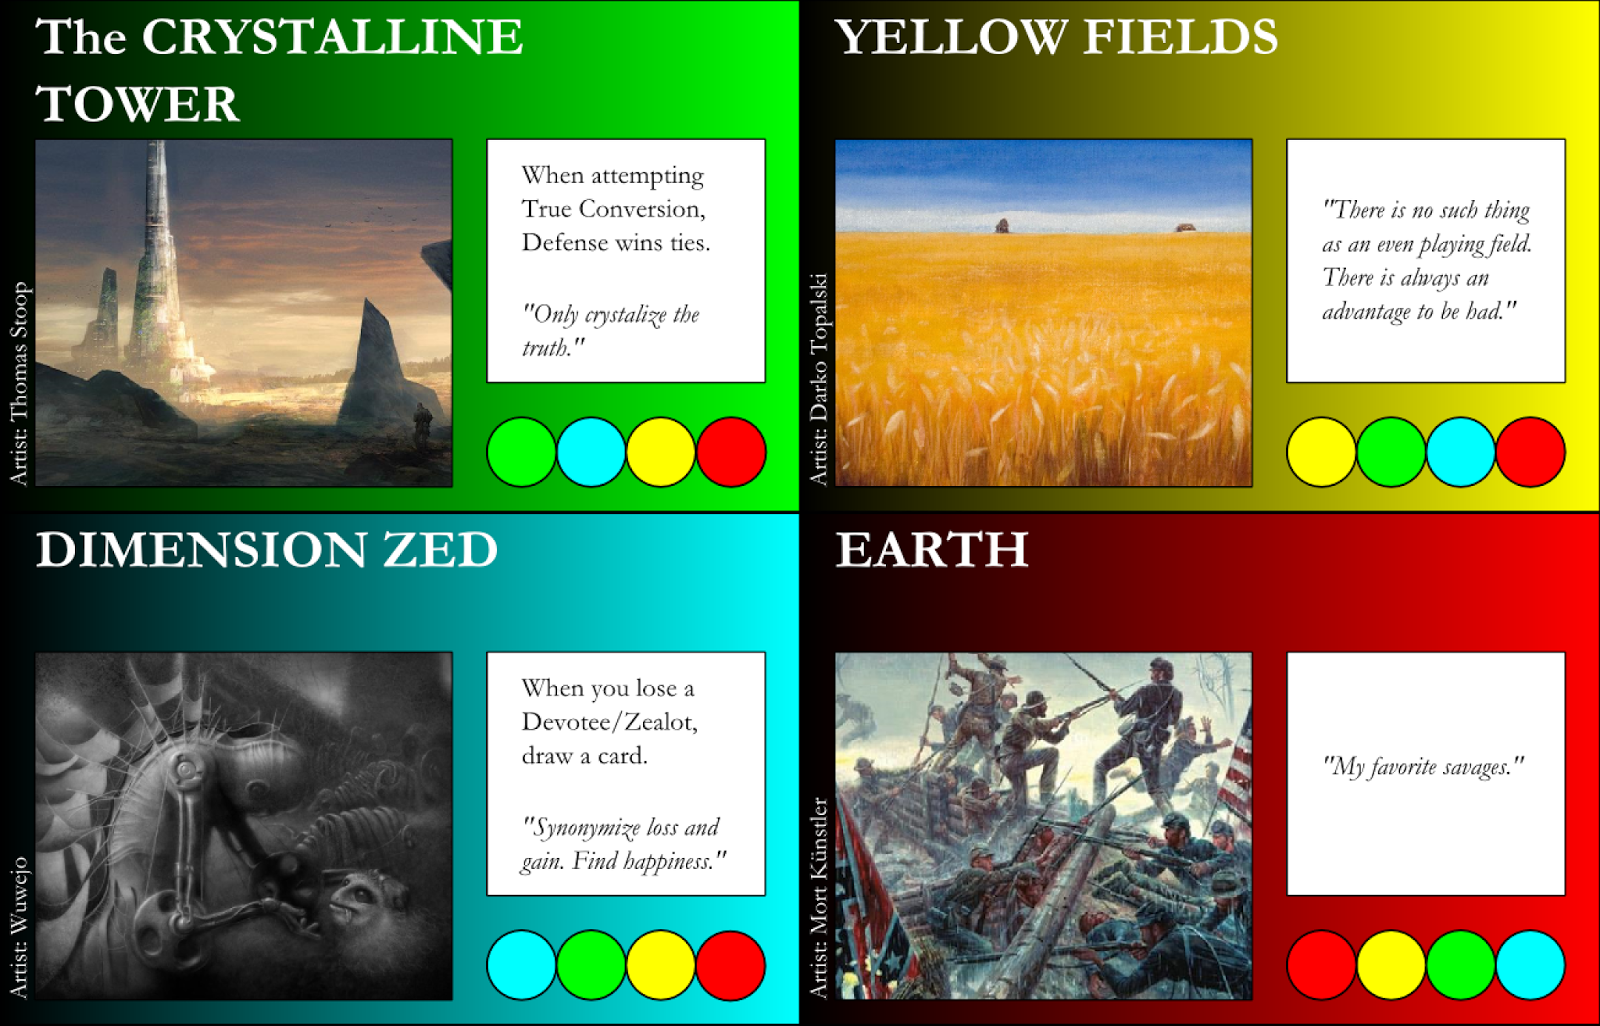 The Crystalline Tower, Yellow Fields, Dimmension Zed, & Earth